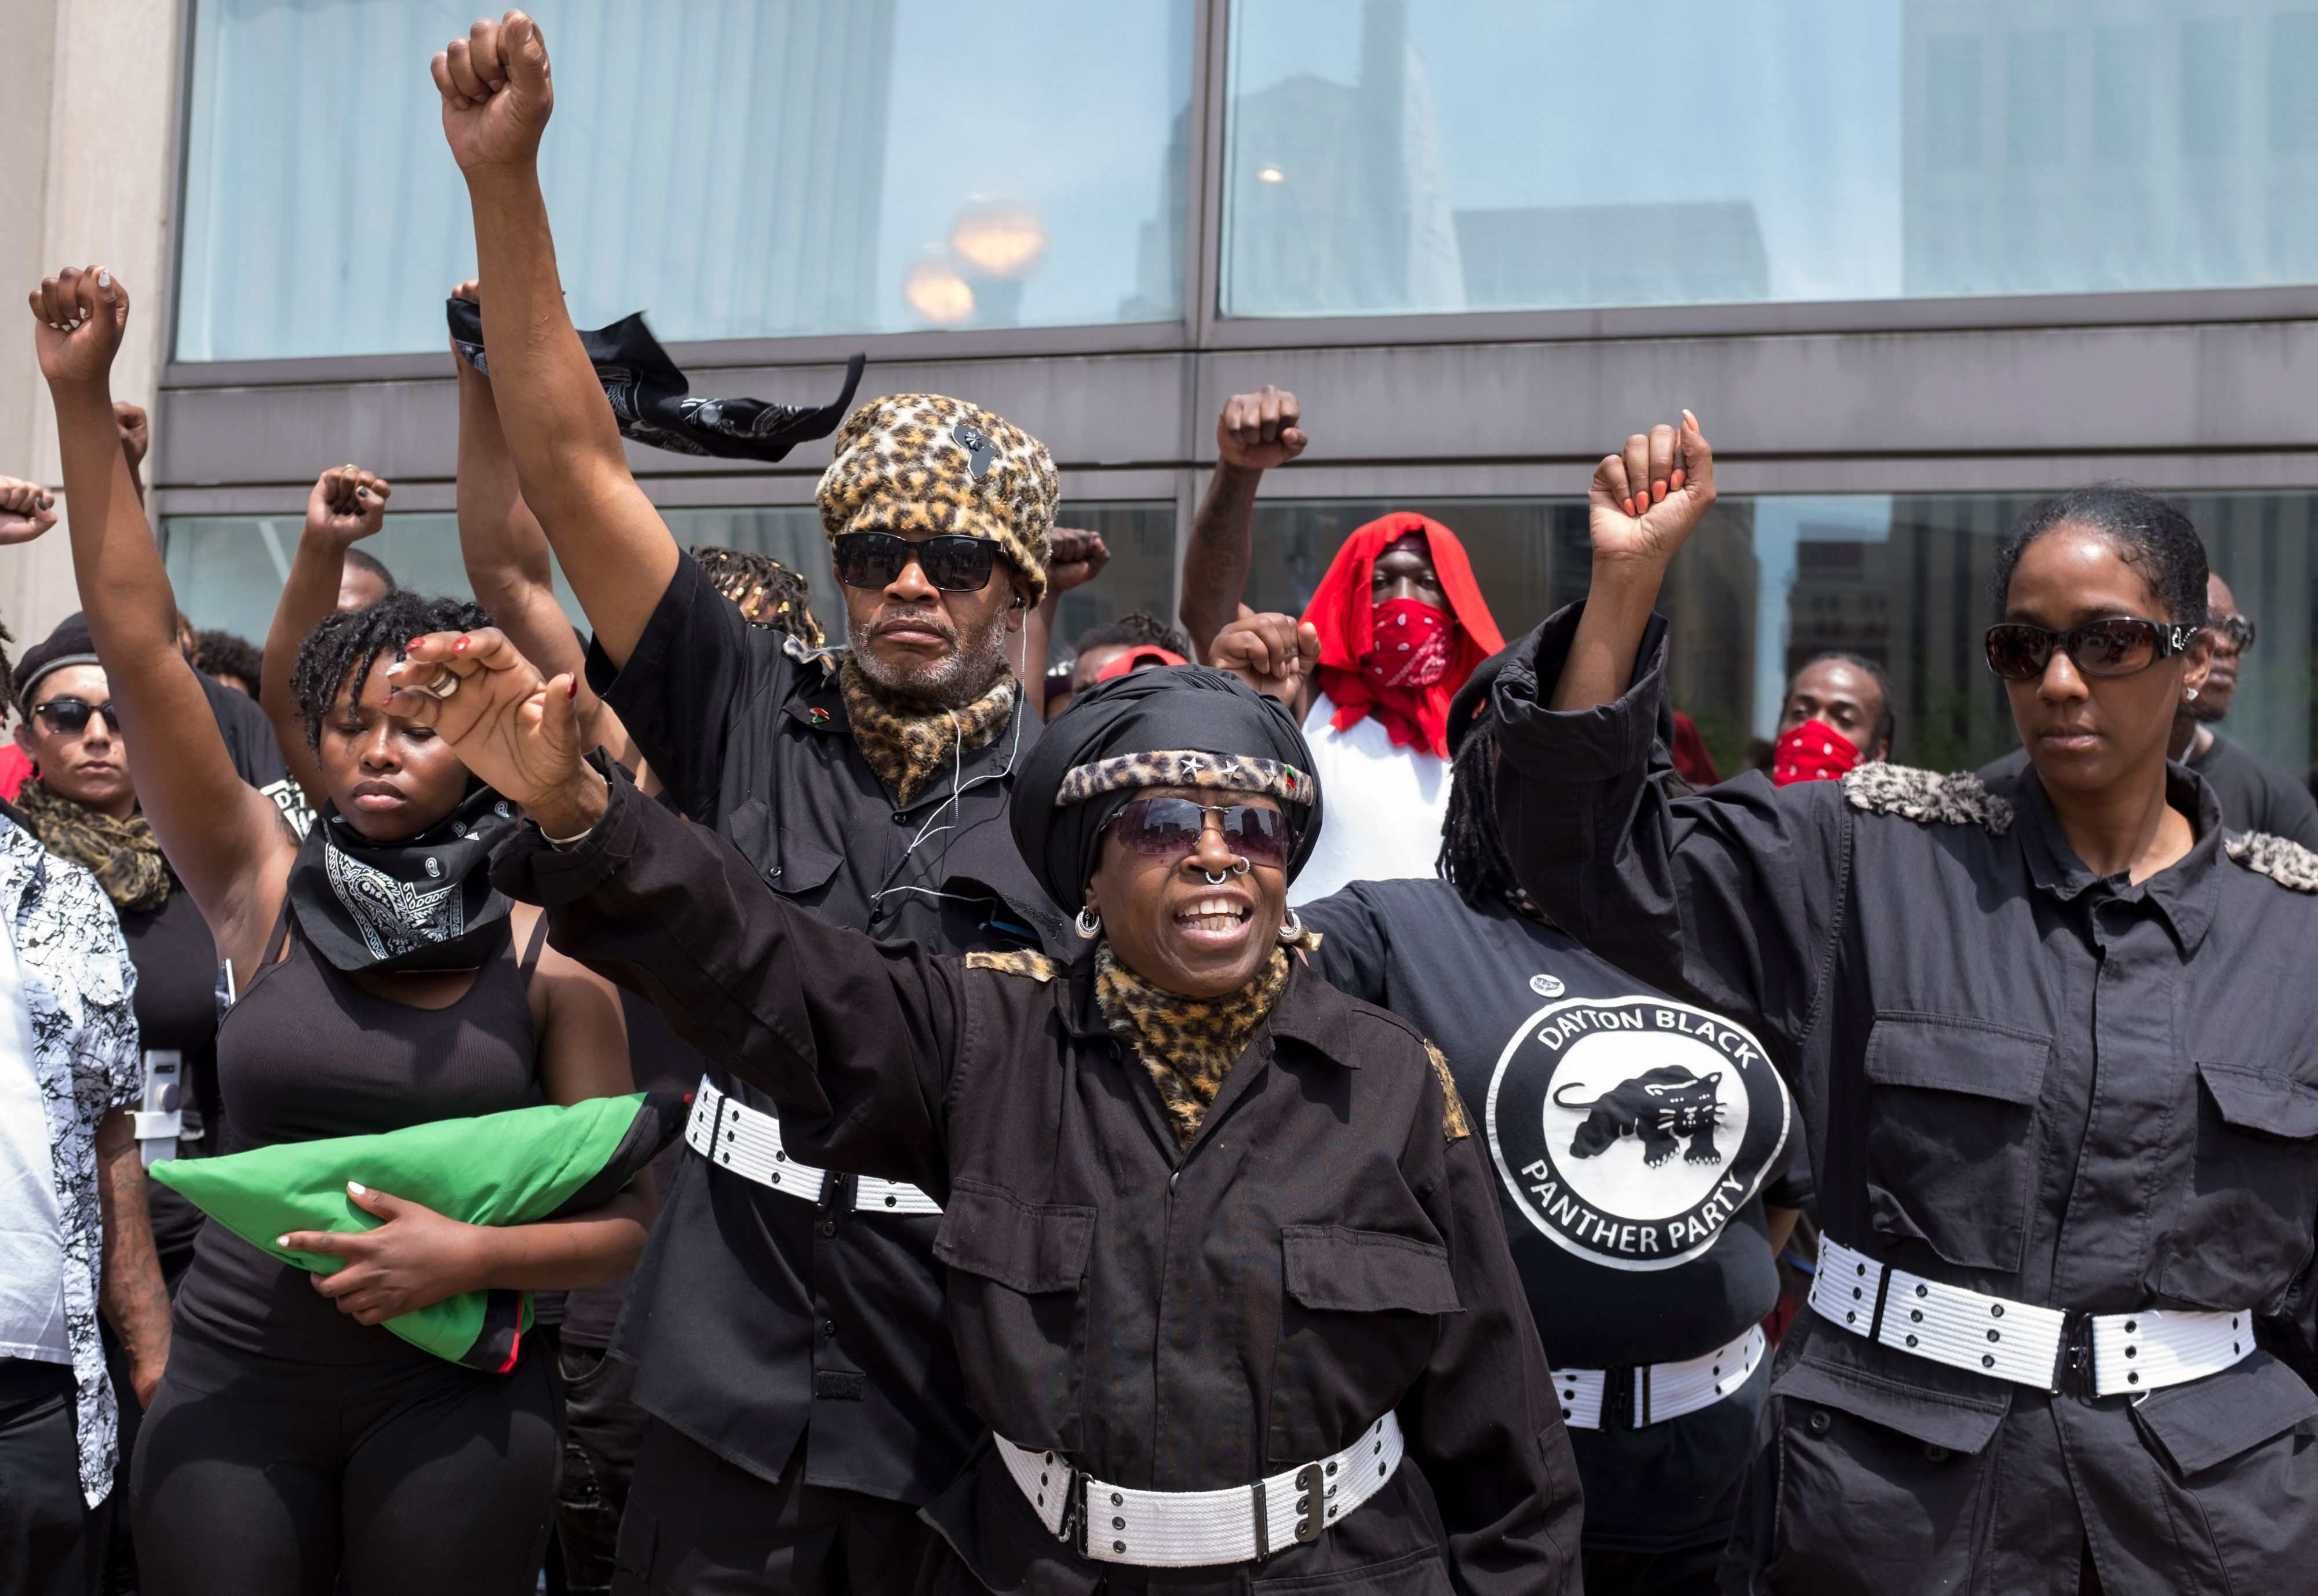 The Dayton chapter of the Black Panthers protest against a small group from a KKK-affiliated group during a rally in Dayton, Ohio, May 25, 2019.